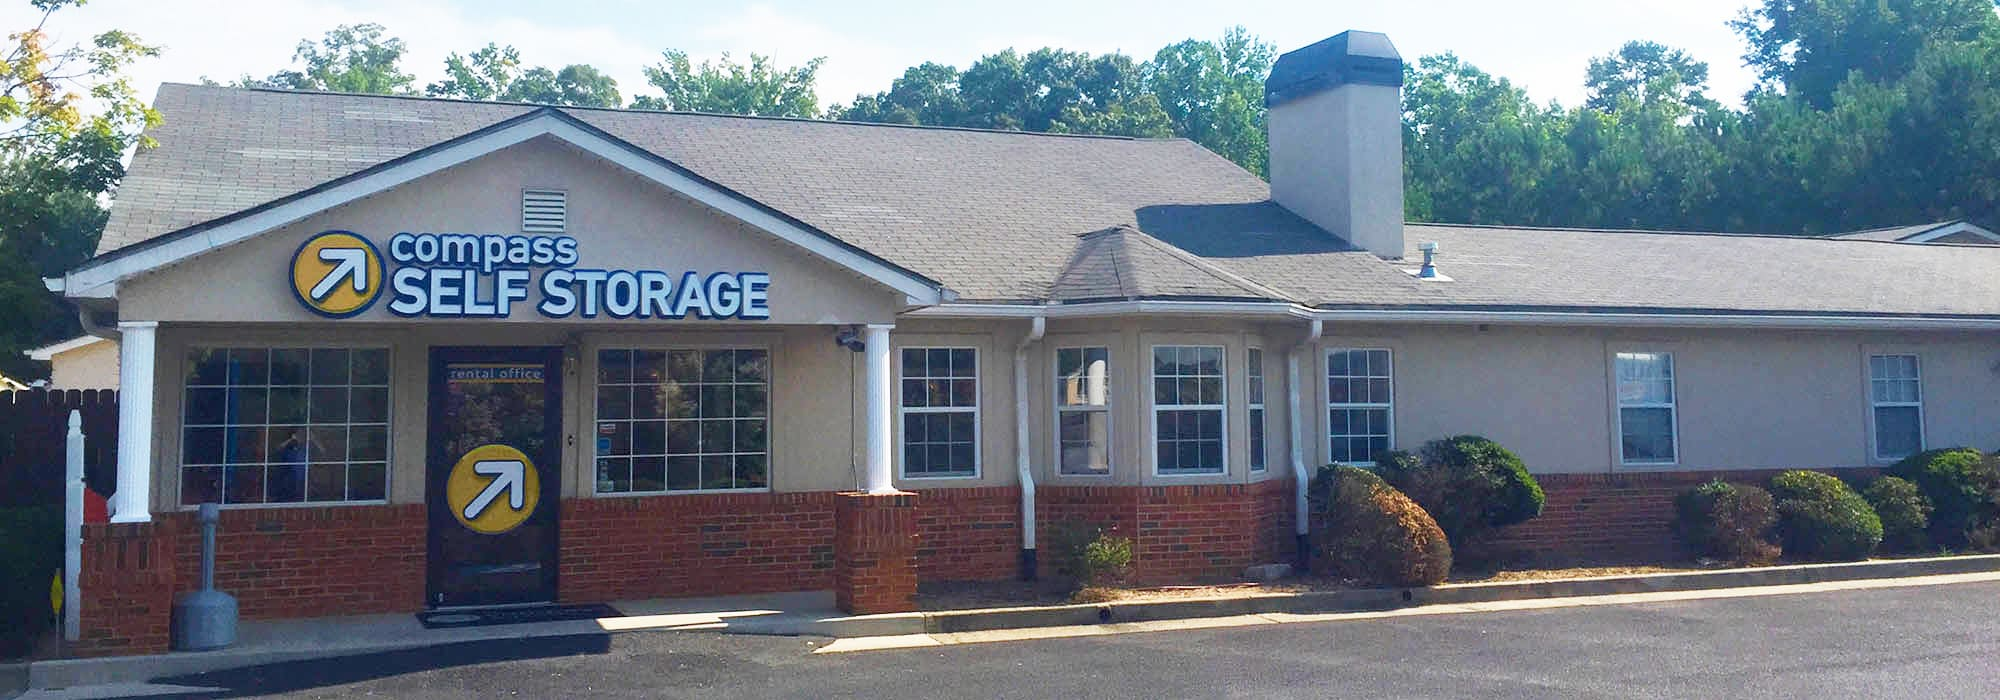 Self storage in Marietta GA